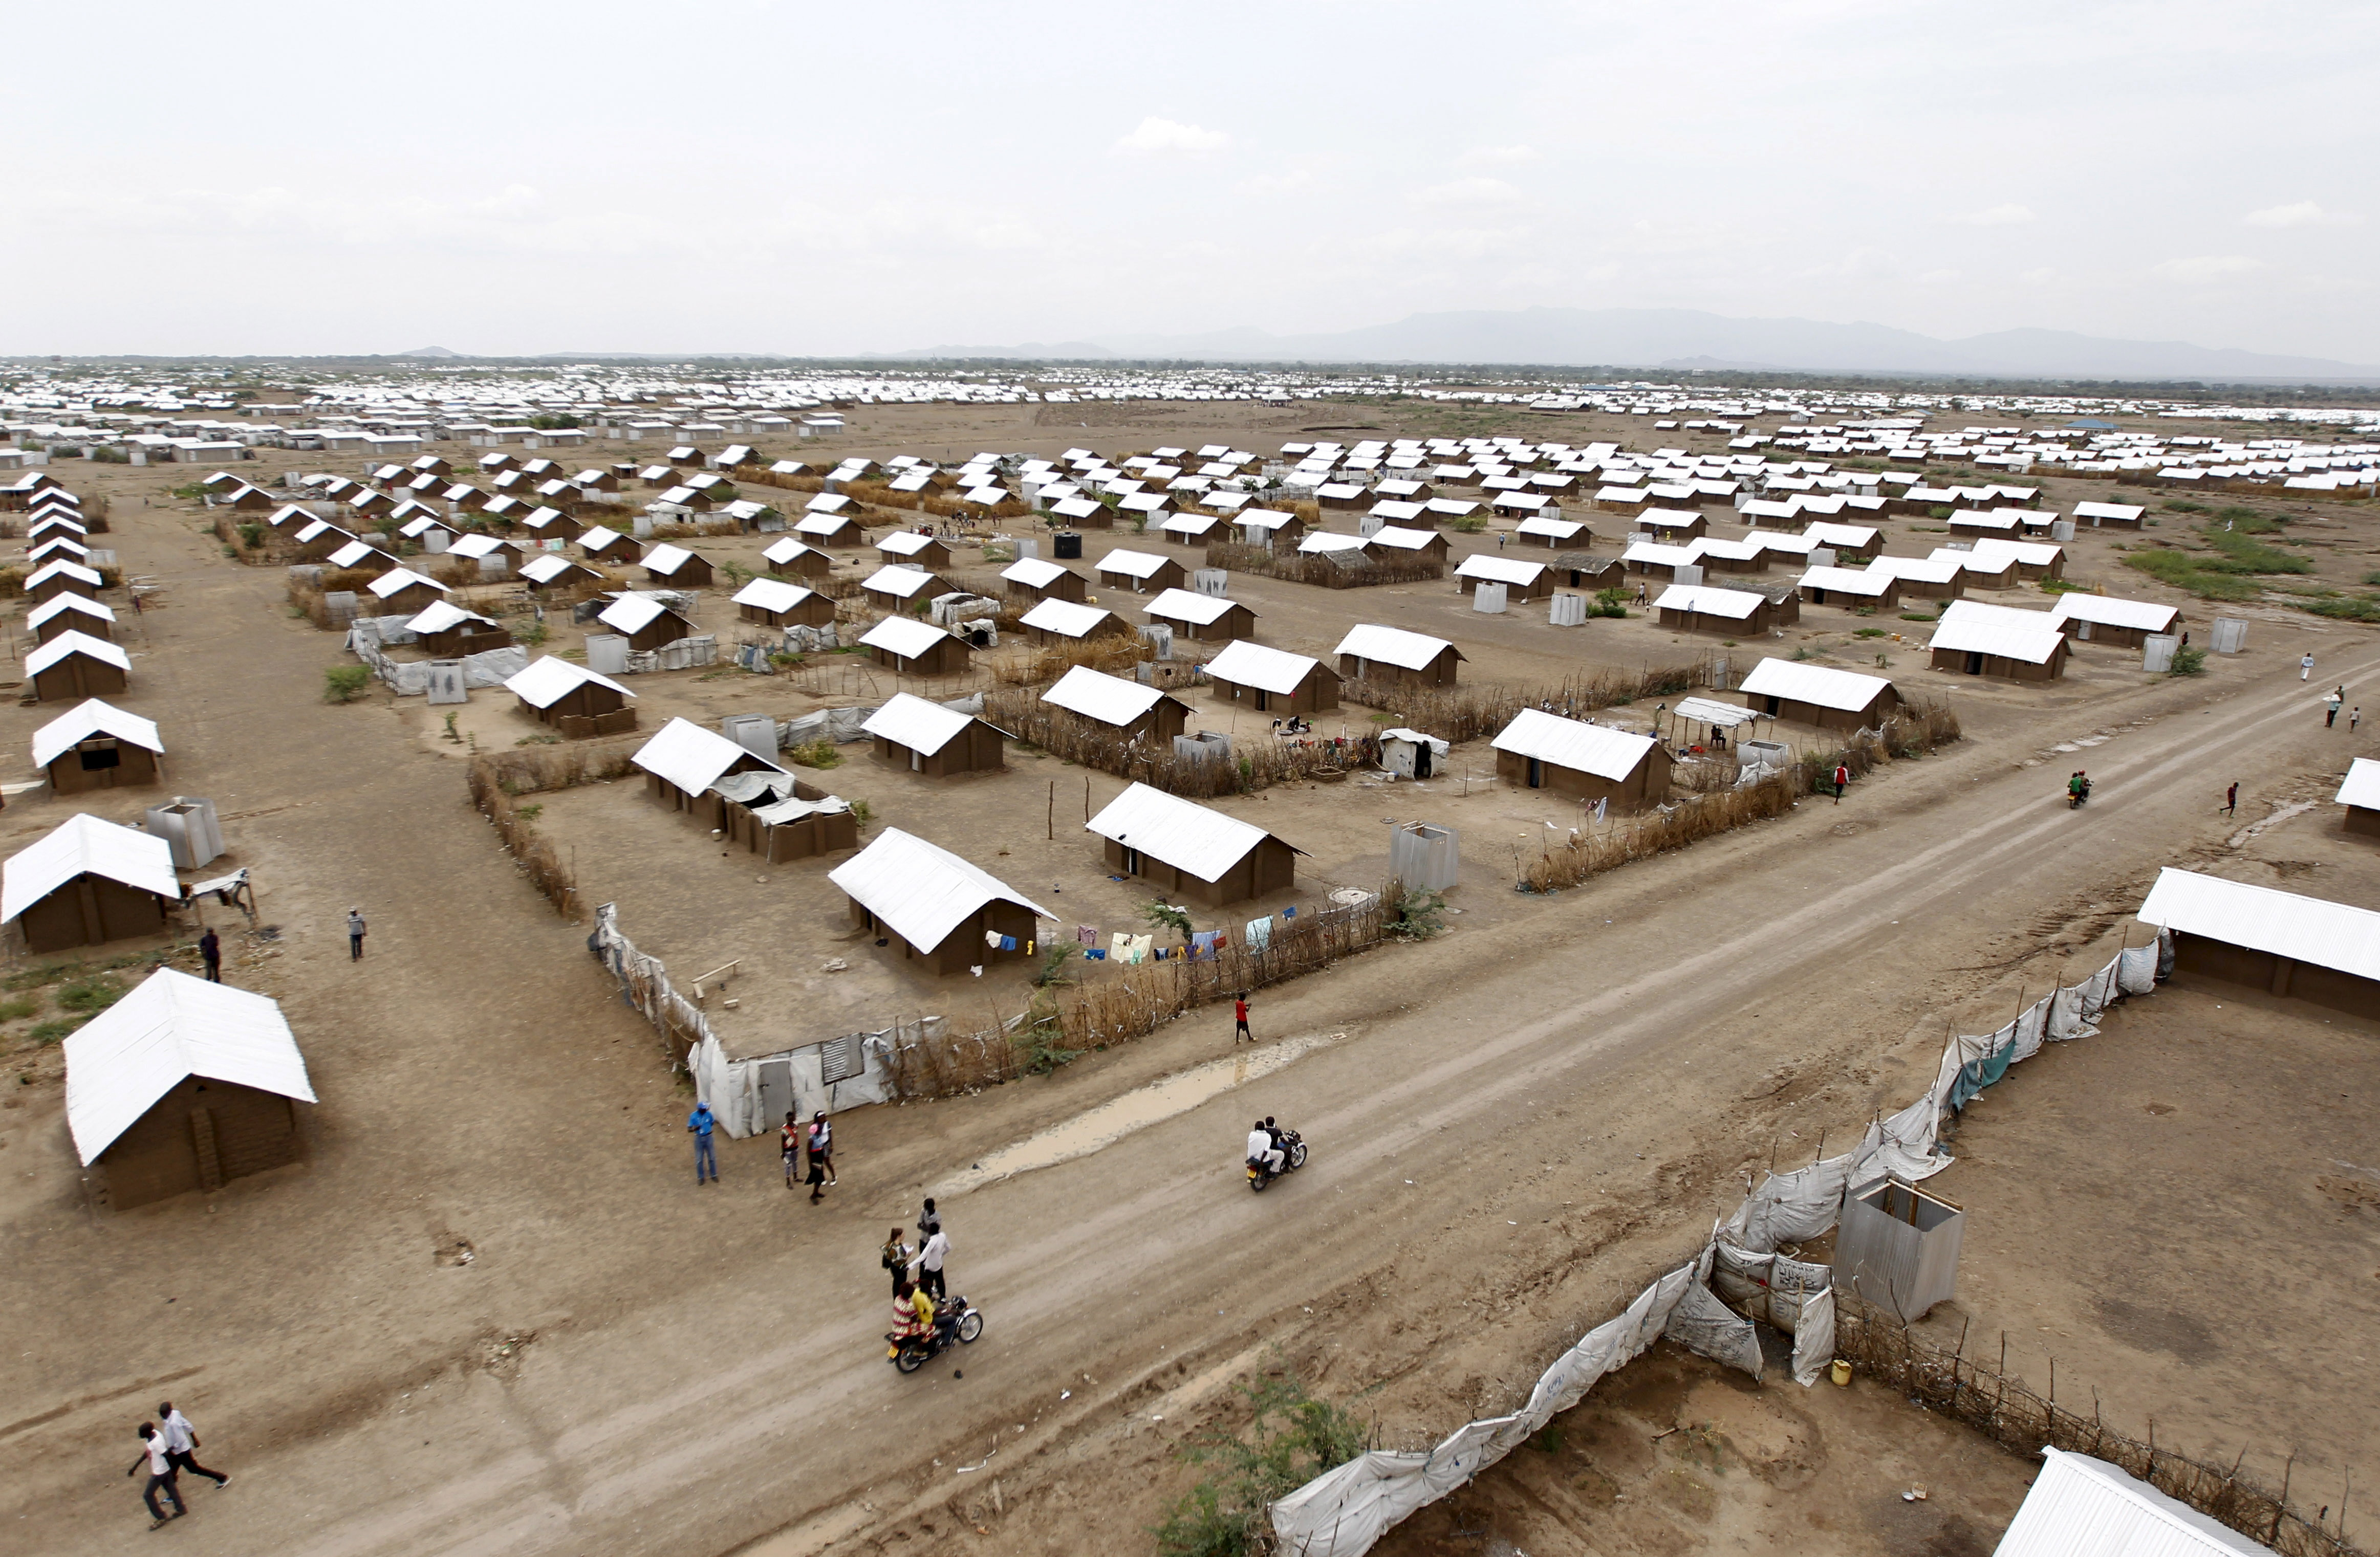 An aerial view shows recently constructed houses at the Kakuma refugee camp in Turkana District, northwest of Kenya's capital Nairobi, June 20, 2015. June 20 is World Refugee Day, an occasion that draws attention to those who have been displaced around the globe. REUTERS/Thomas Mukoya - GF10000134334